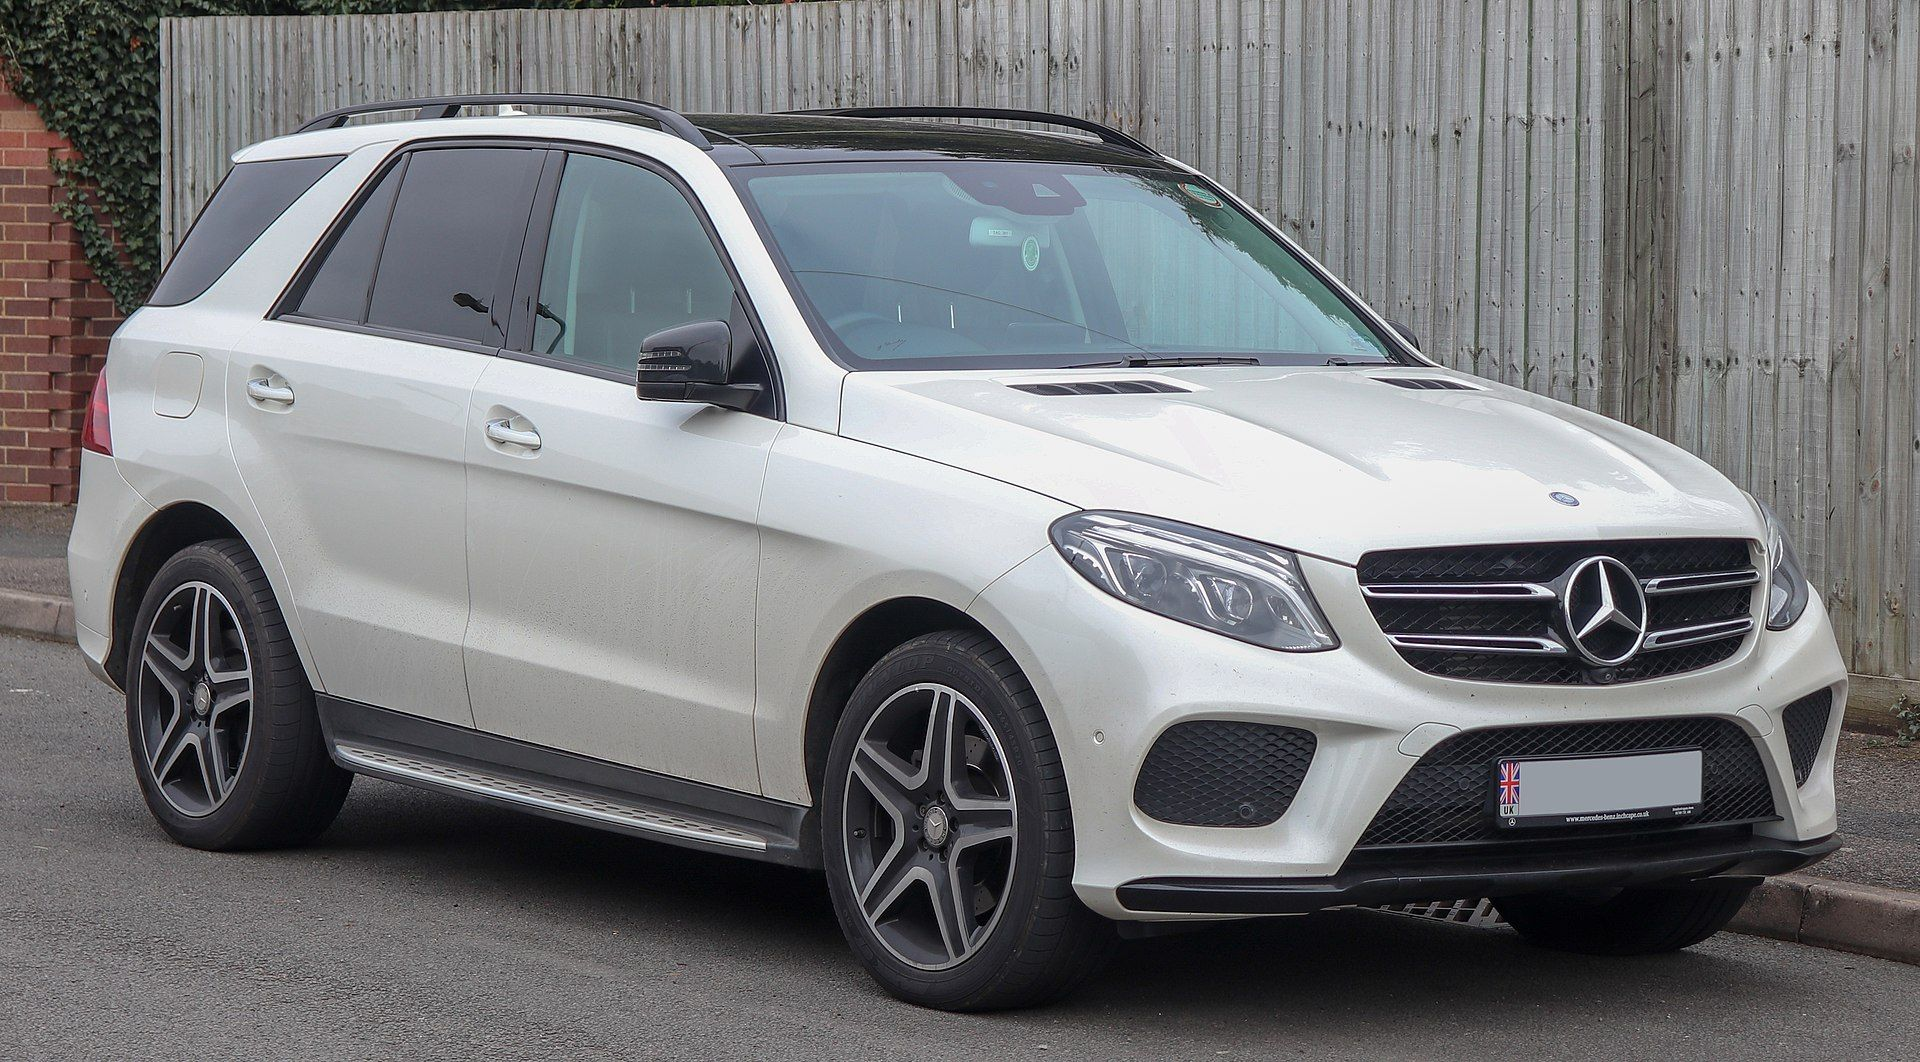 2016 Mercedes Benz Gle 250 Diesel 4matic Amg Line Premium 2 1 Front Mercedes Benz M Class Wikipedia Mercedes Benz Ml350 Mercedes Benz Suv Mercedes Benz